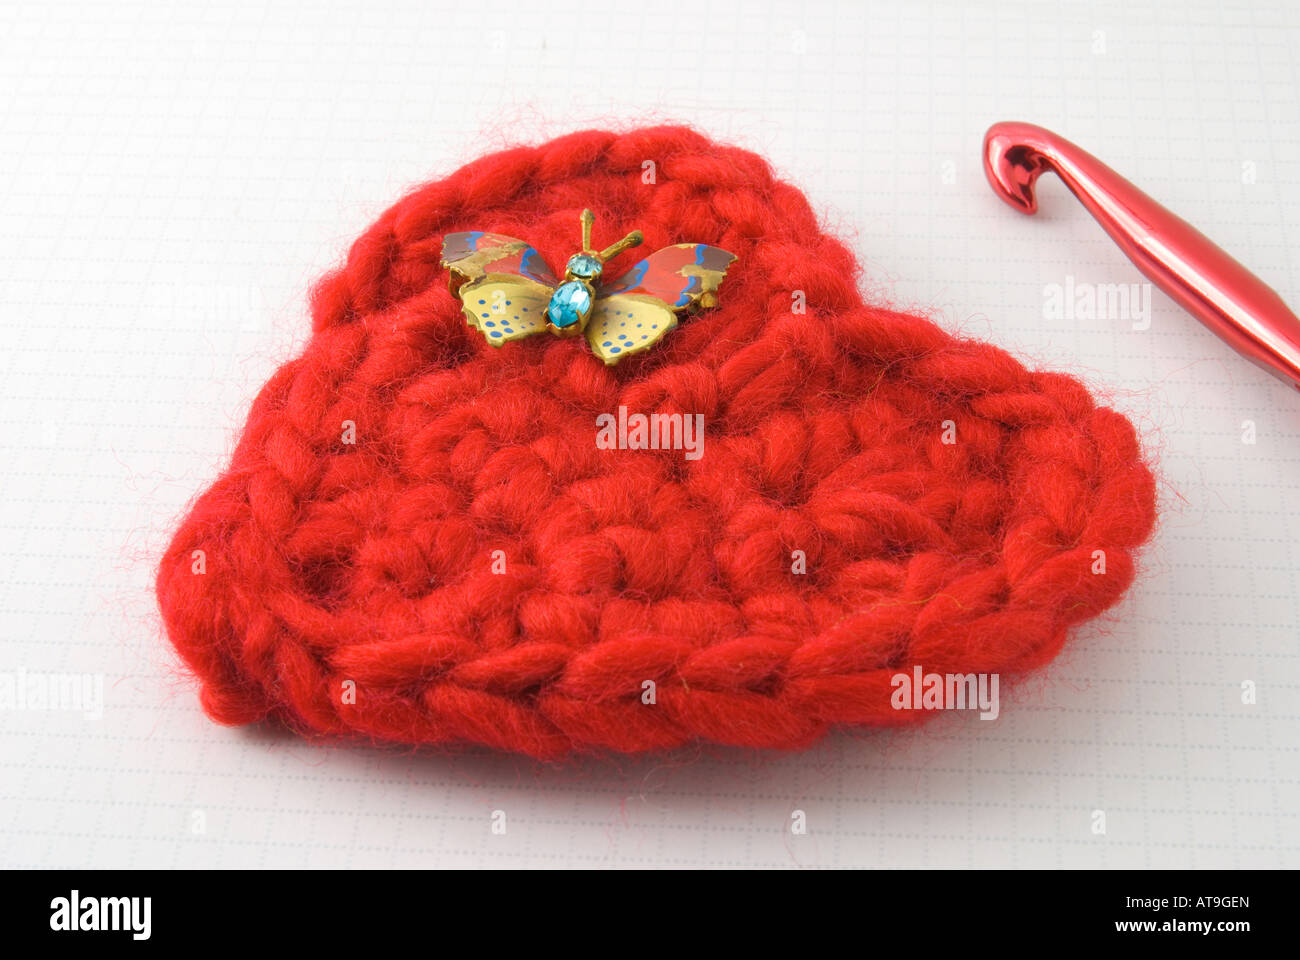 Crocheted red heart with butterfly pin and crochet hook - Stock Image